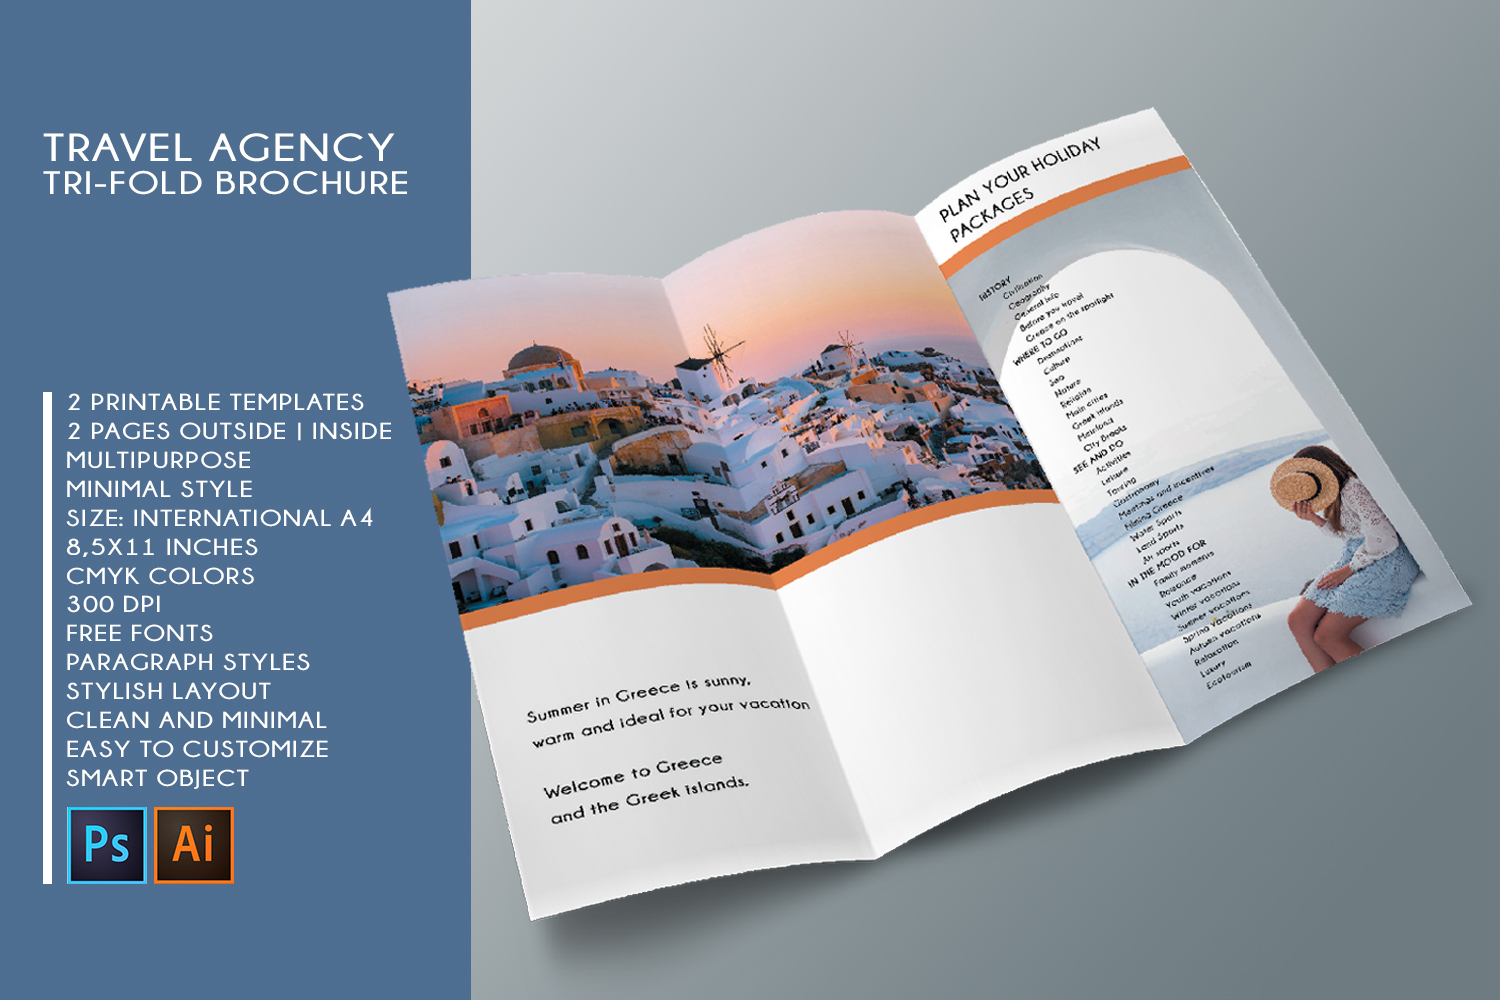 Trifold Travel Agency Brochure Templates A4 example image 1